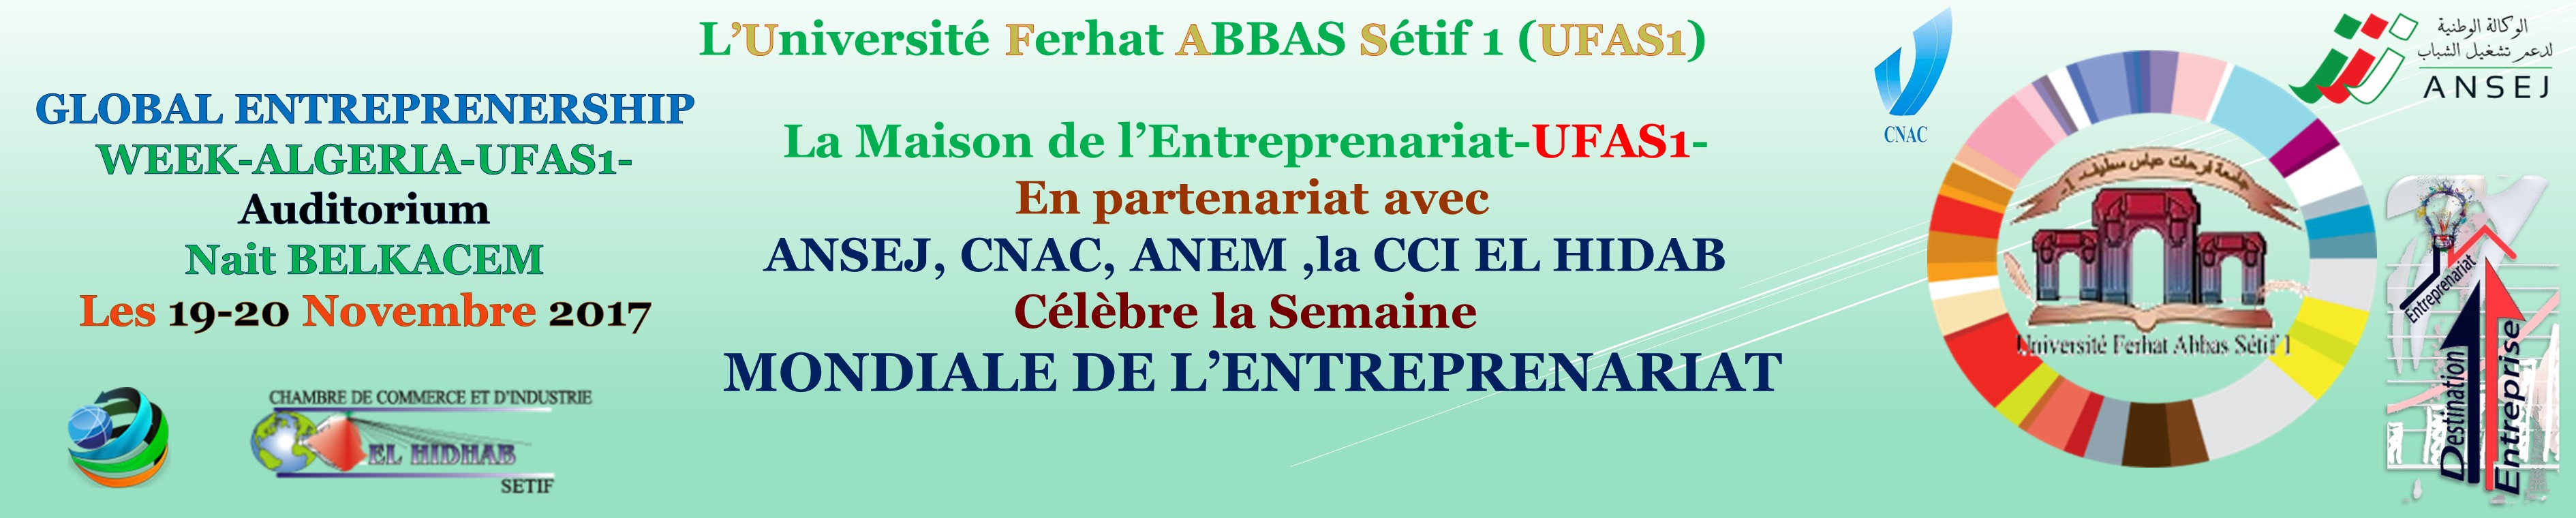 baniere Journees entreprenariat 2017